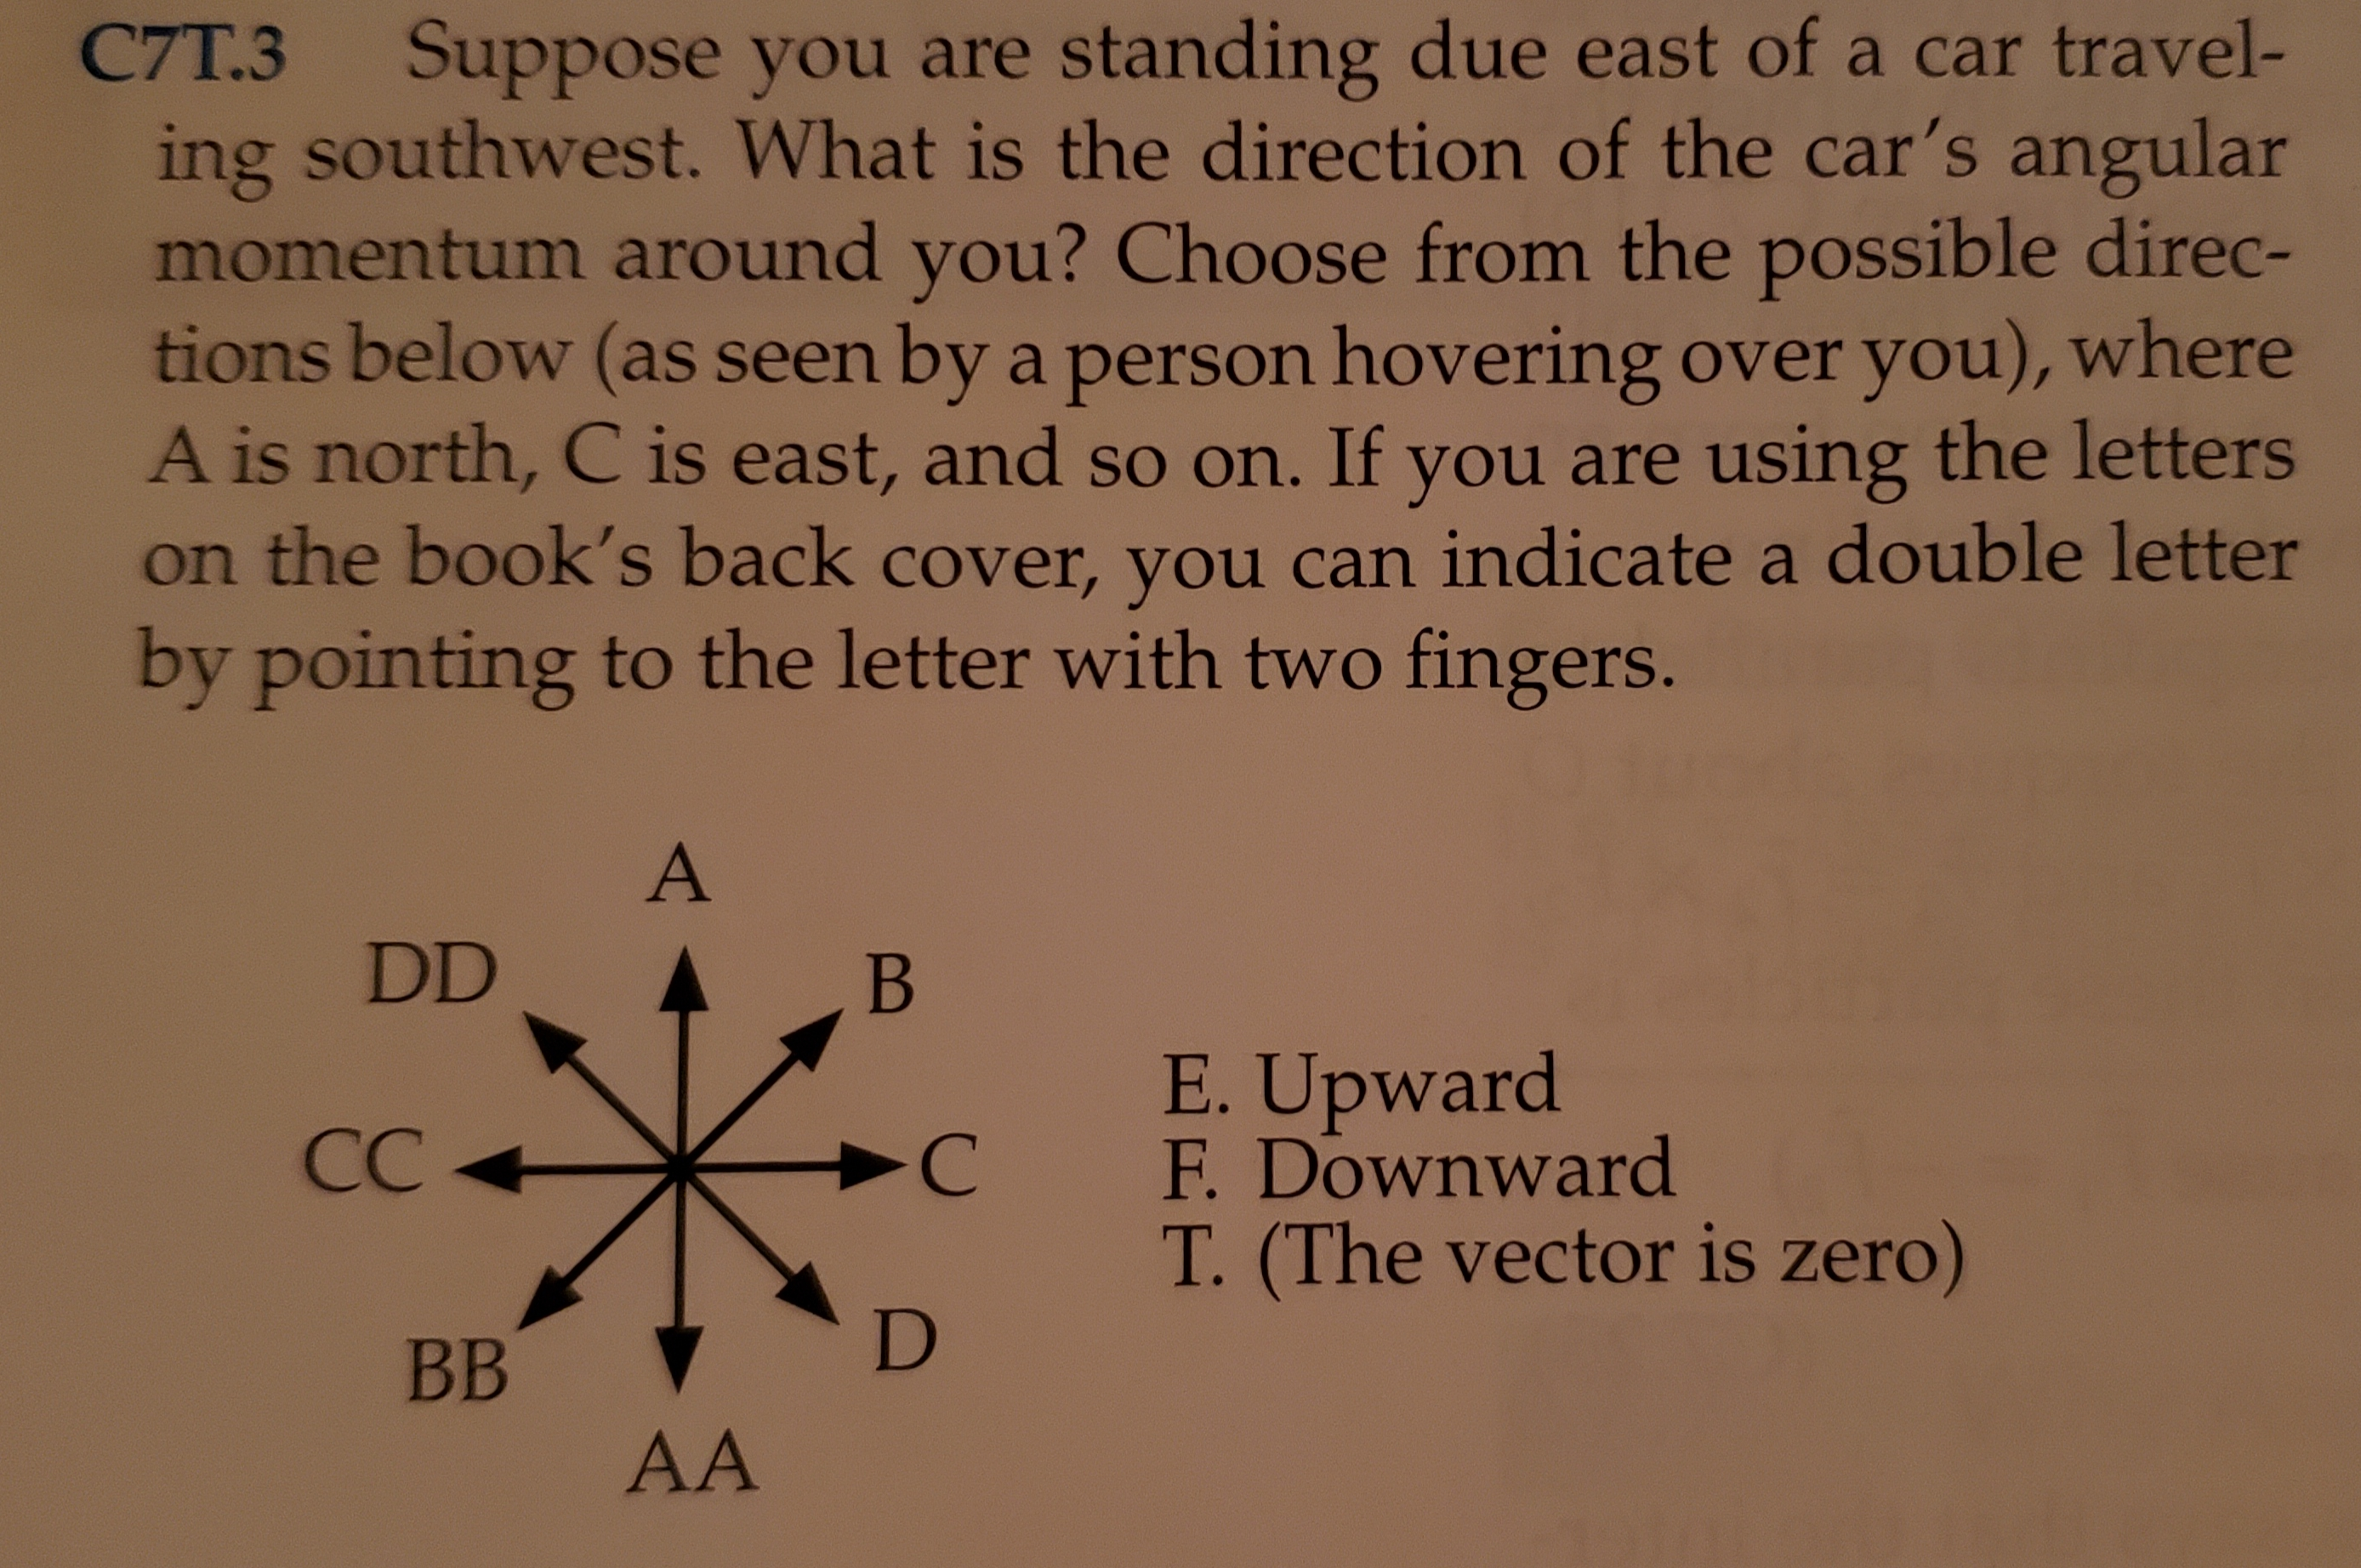 C7T.3 Suppose you are standing due east of a car travel- ing southwest. What is the direction of the car's angular momentum around you? Choose from the possible direc- tions below (as seen by a person hovering over you), where A is north, C is east, and so on. If you are using the letters on the book's back cover, you can indicate a double letter by pointing to the letter with two fingers. A DD В E.Upward F. Downward СС -C T. (The vector is zero) D ВB AA